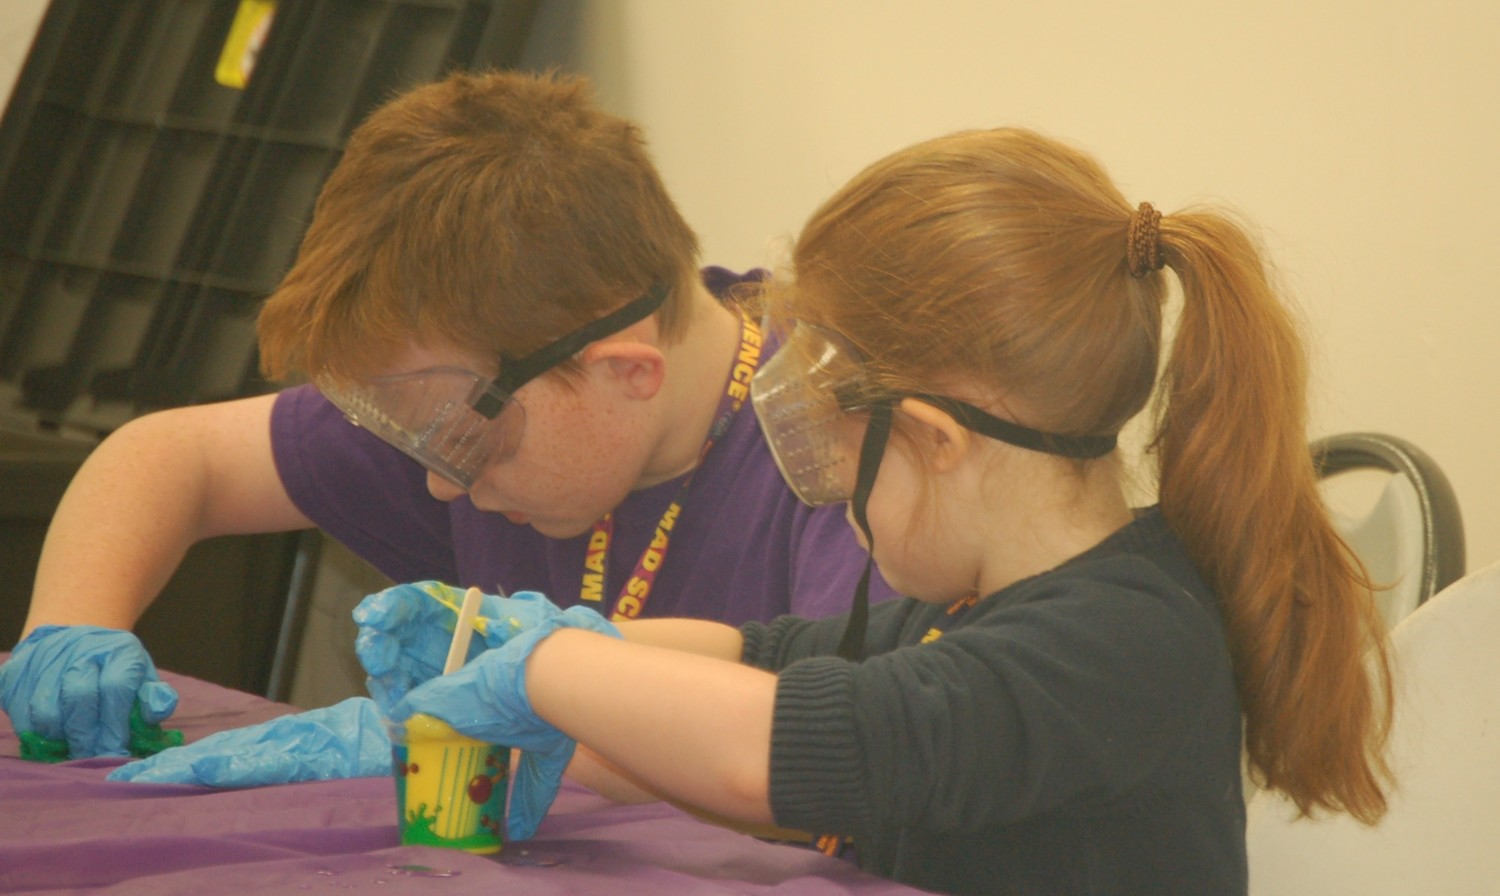 Campers examined the changing of a liquid to a solid and the process it undergoes.